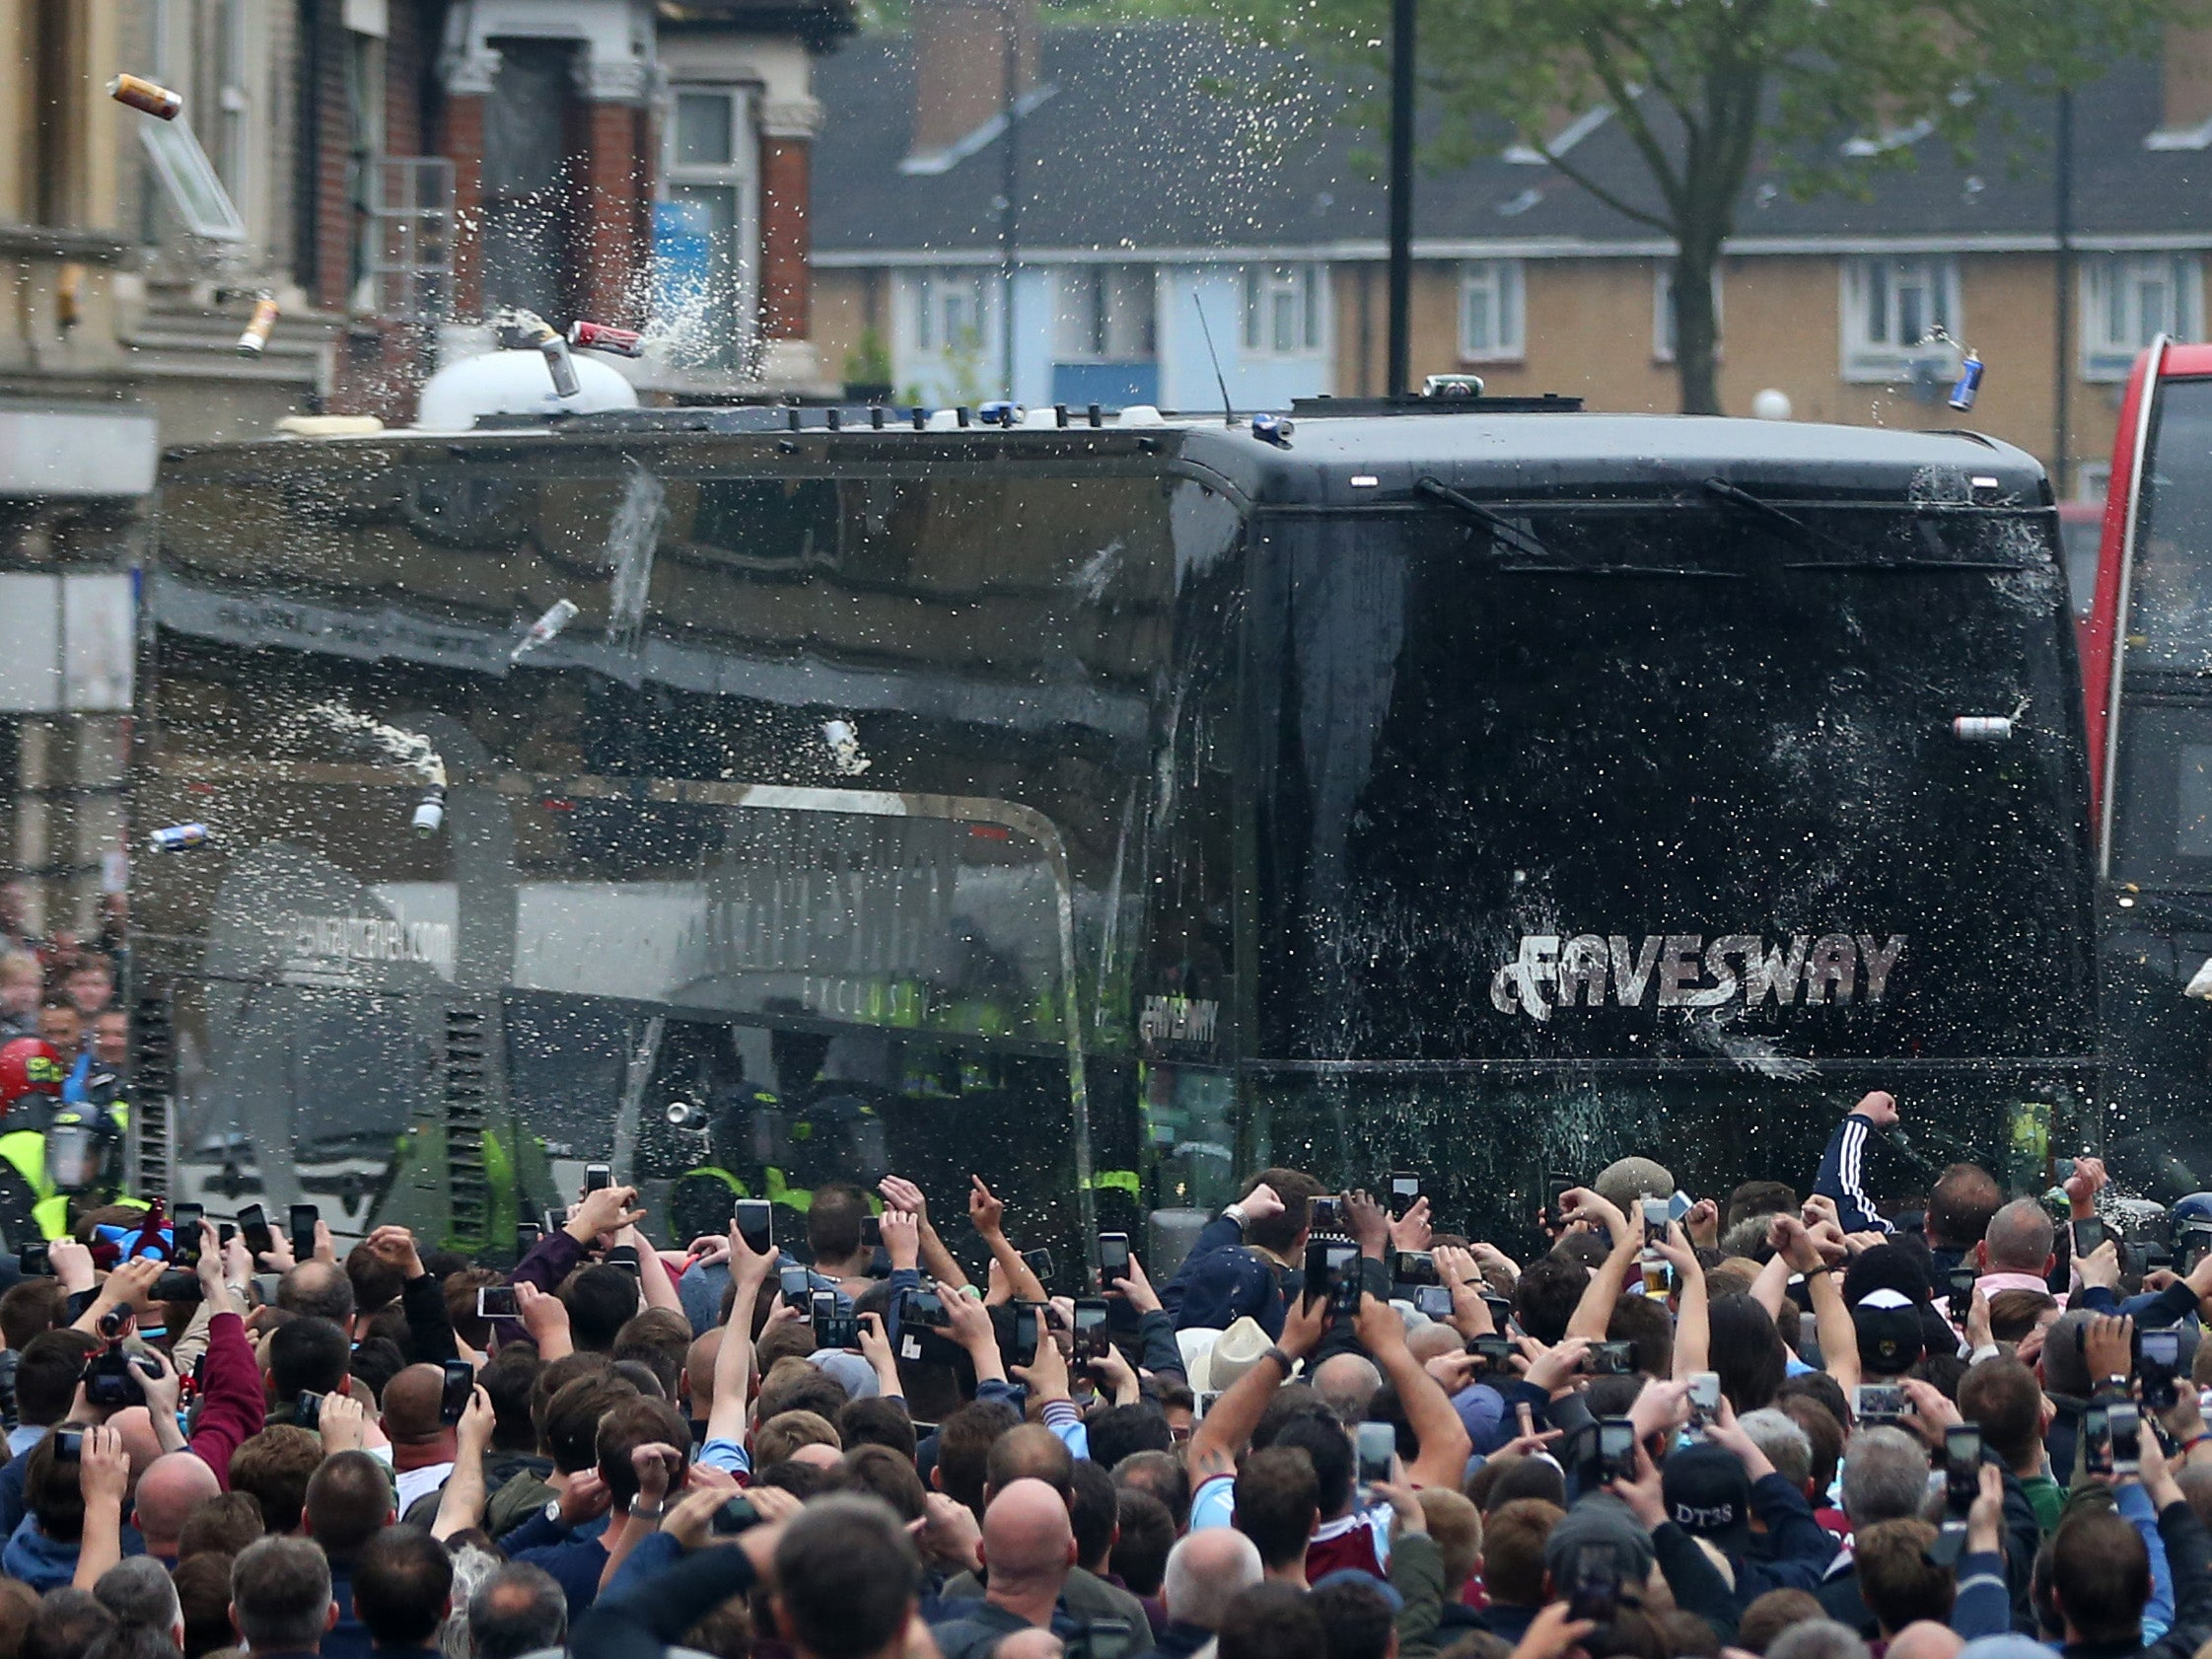 Manchester United bus attack: 28-year-old suspect arrested | Home News | News | The Independent